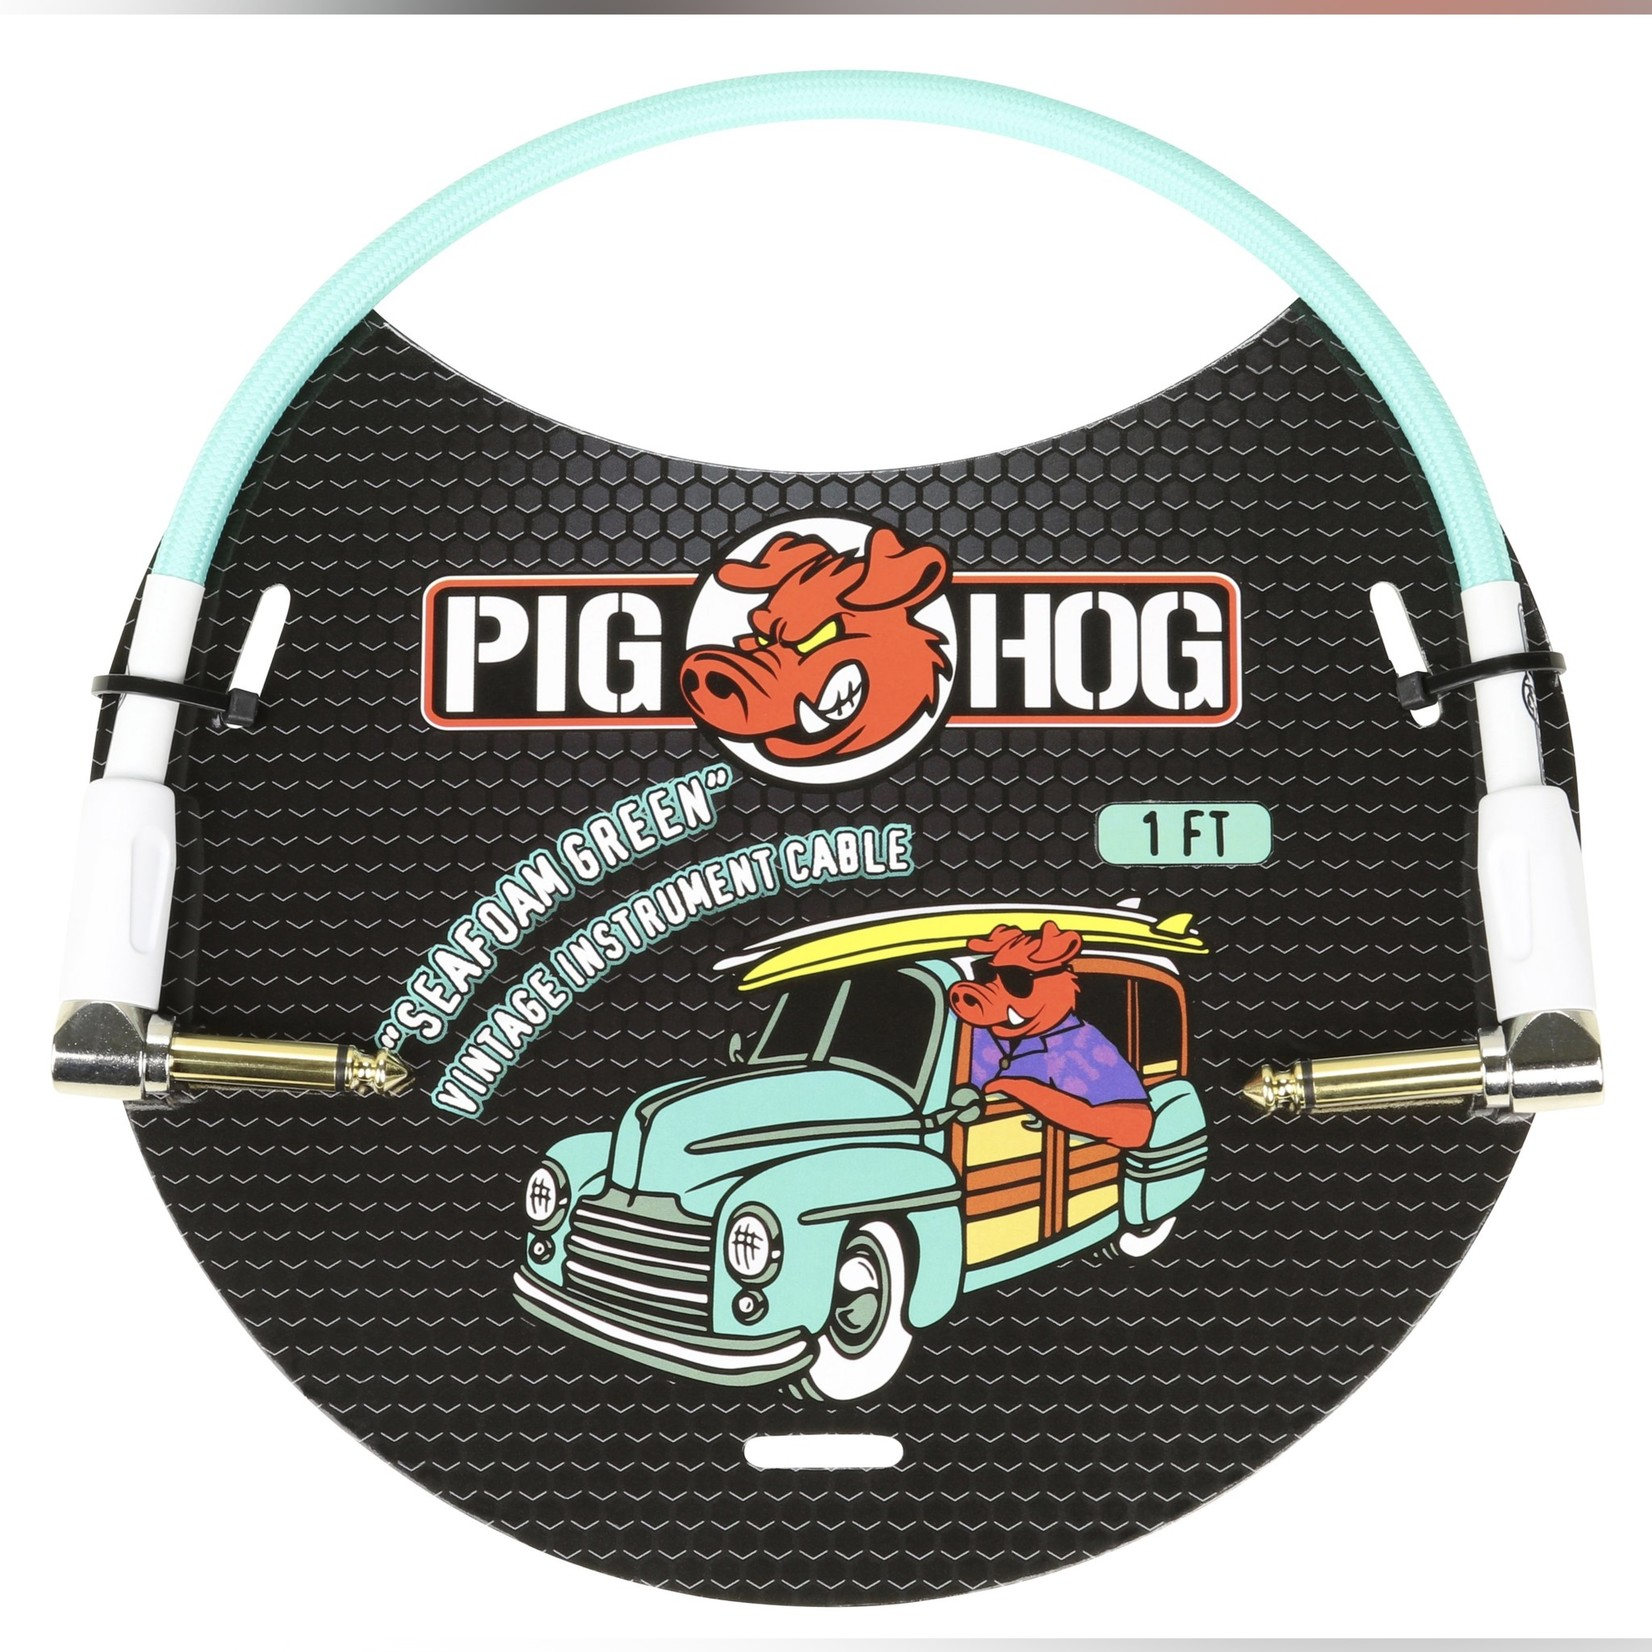 Pig Hog Pig Hog Vintage Woven Patch Cable, 1-Foot, 7mm, Right-Angle Connectors, Seafoam Green (PCH1SGR)